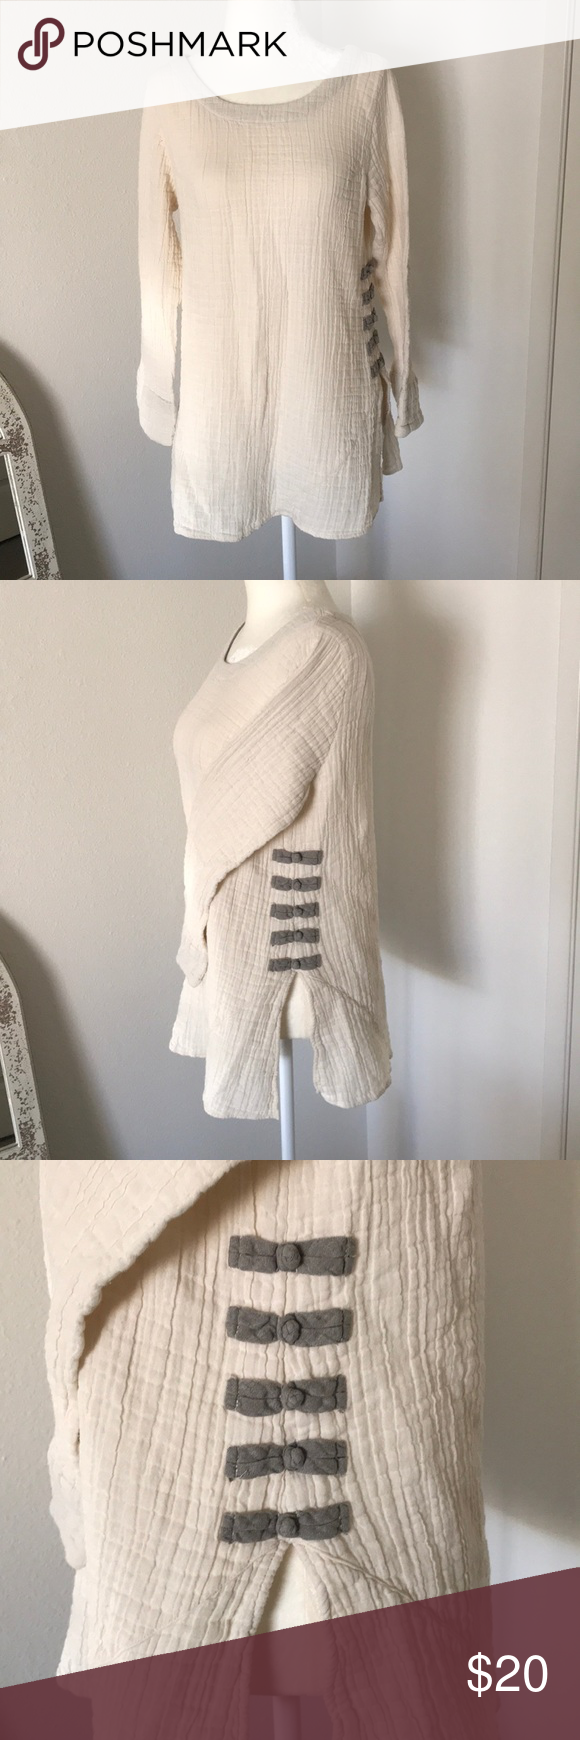 Kleen Cream Cotton Sweater Bell Sleeves In 2018 My Posh Picks